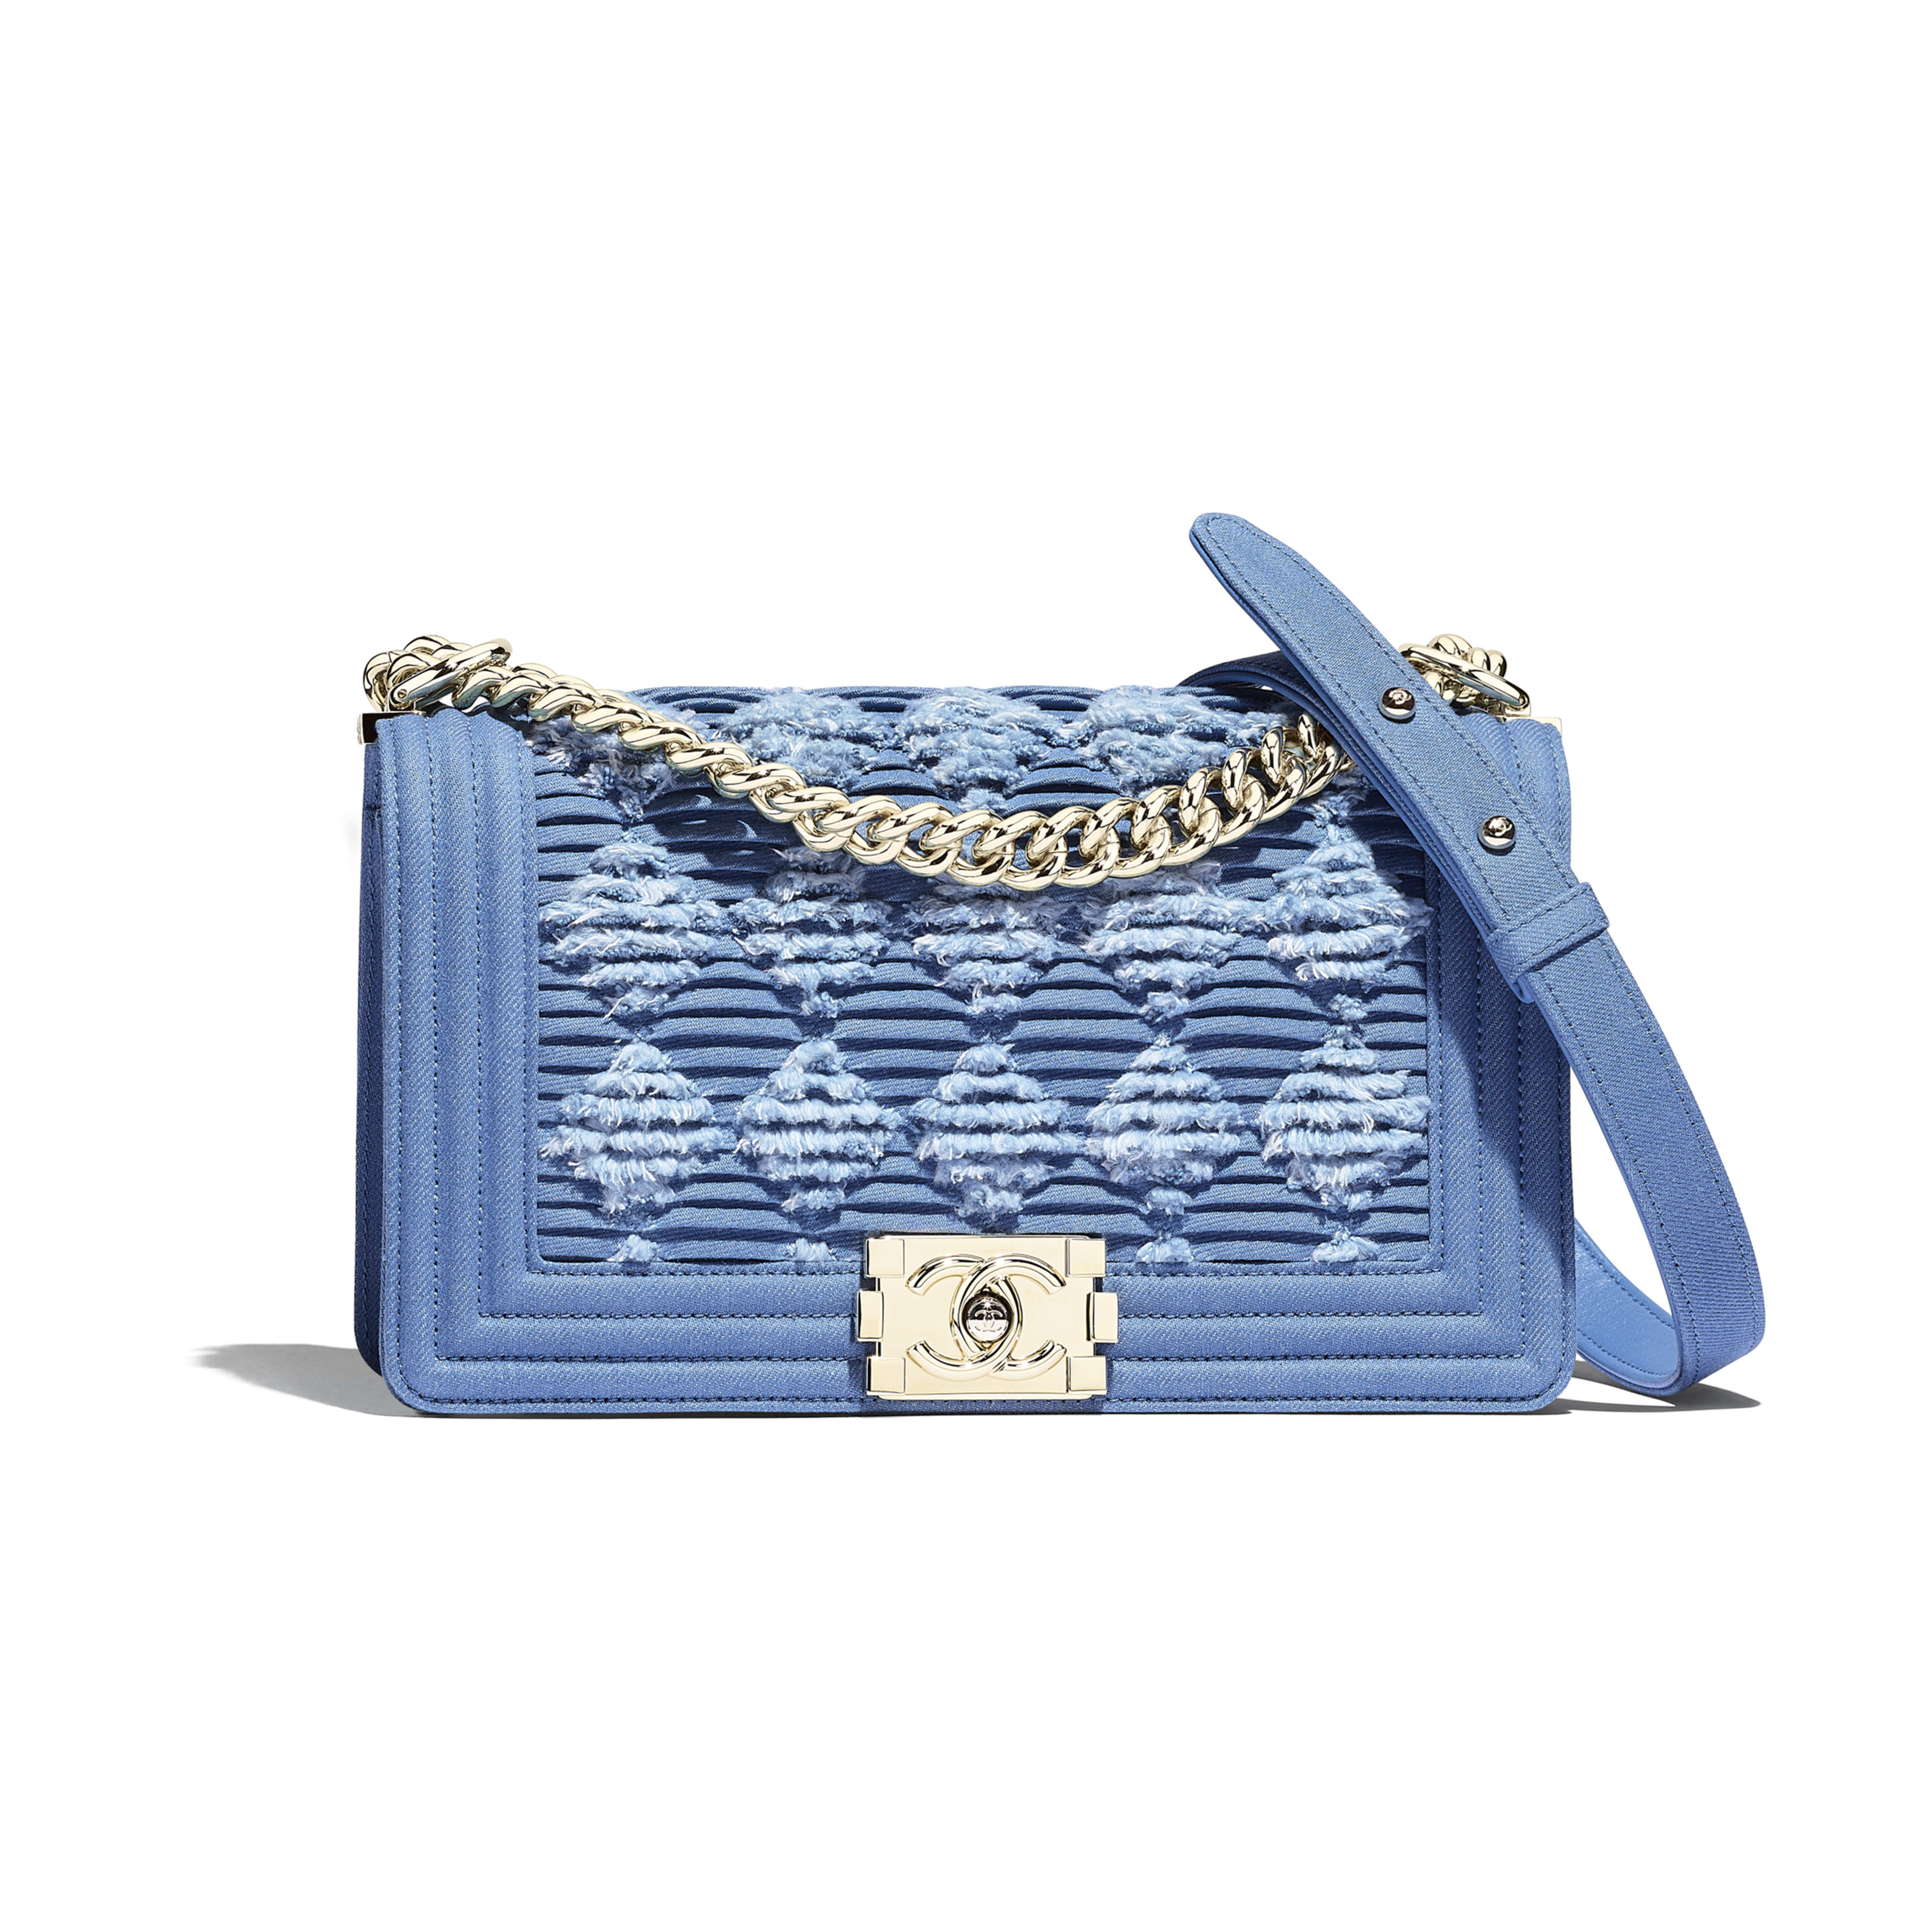 BOY CHANEL Handbag - Light Blue - Pleated Denim & Gold-Tone Metal - Default view - see full sized version